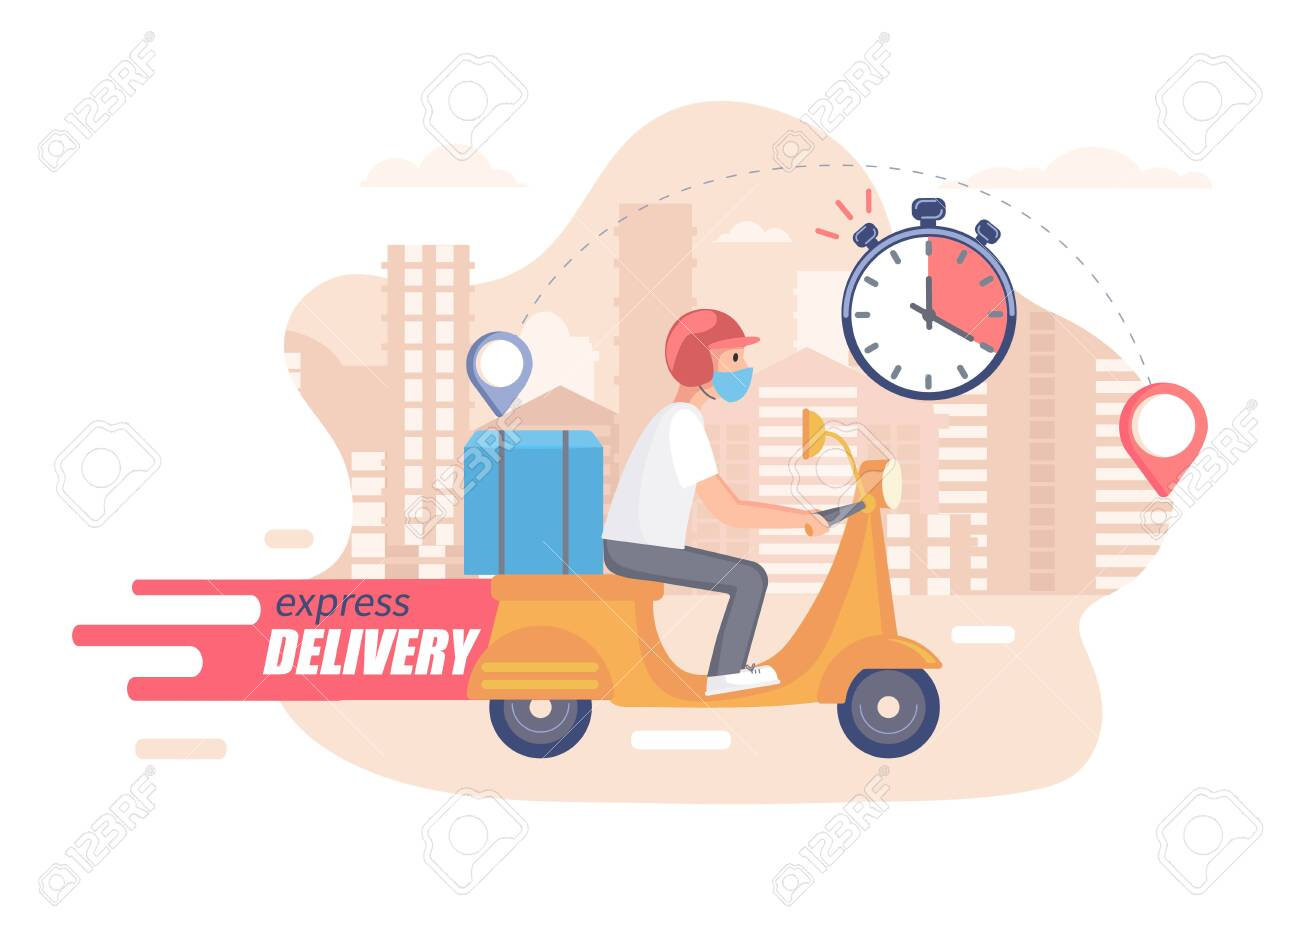 Fast,free and healthy scooter delivery concept. Food and other shipping service for websites in quarantine. Vector illustration of quick and express deliver. Advertise for restaurants, caffees, shops. - 143299130